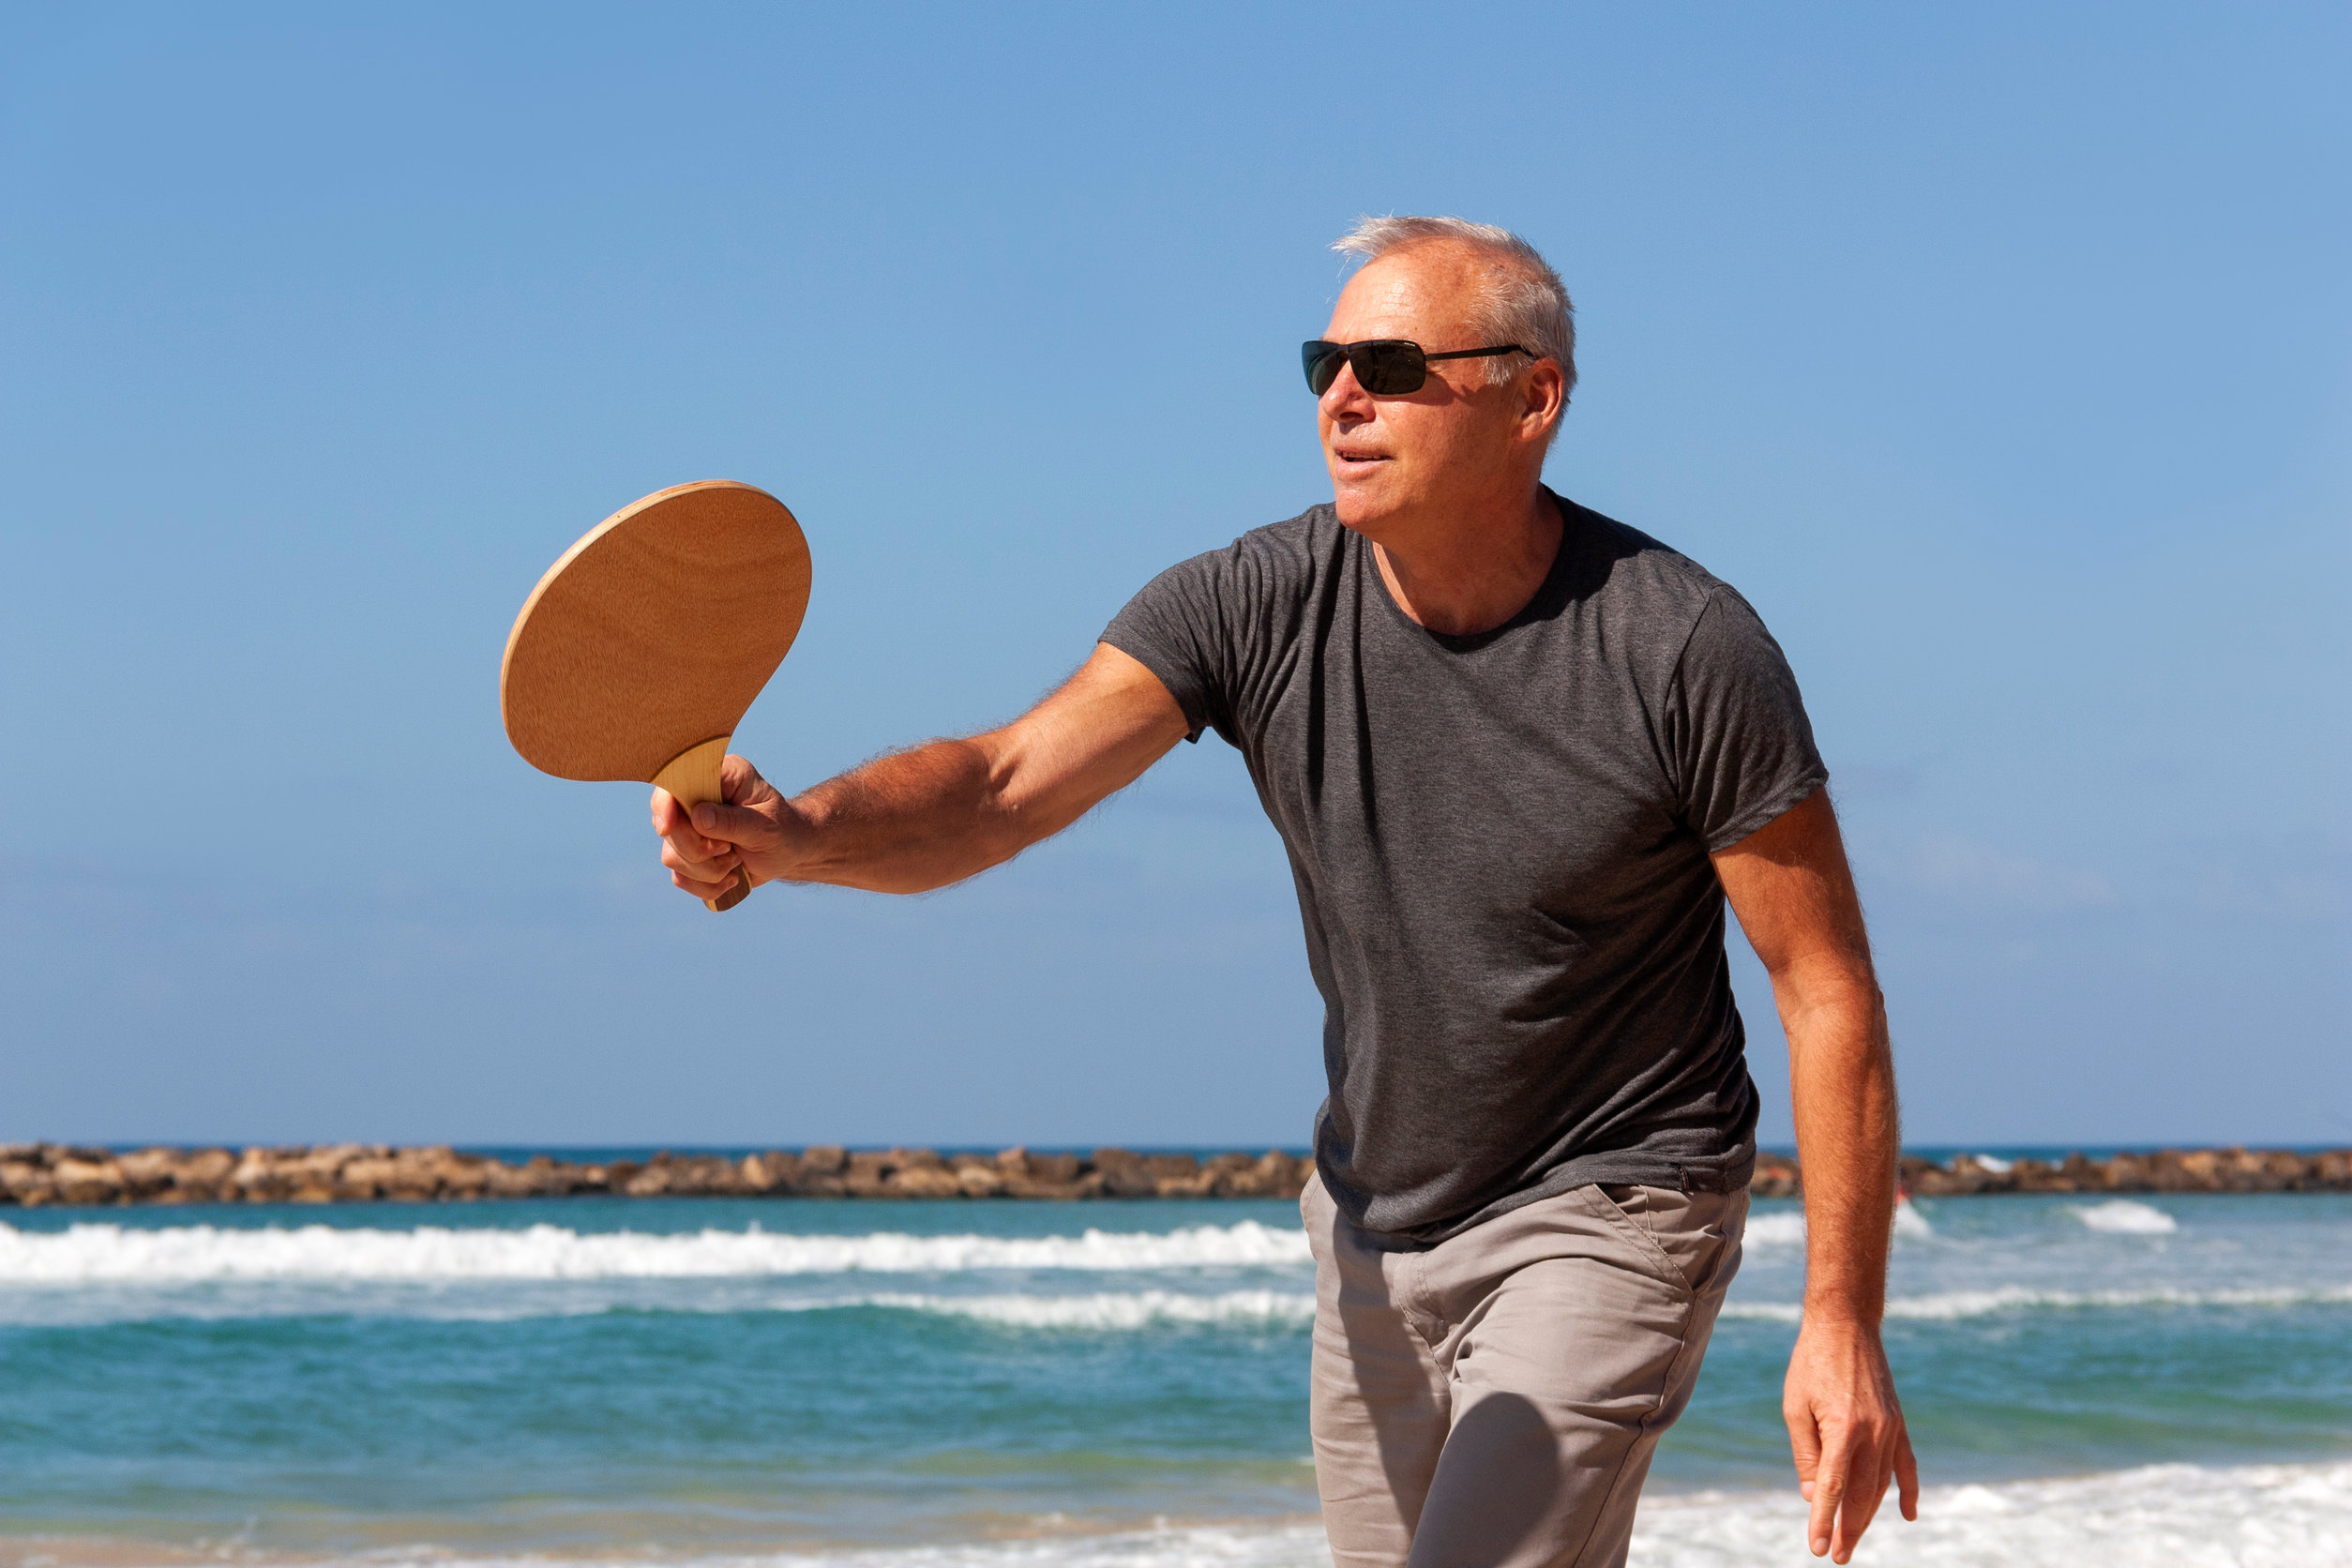 beach games for adults